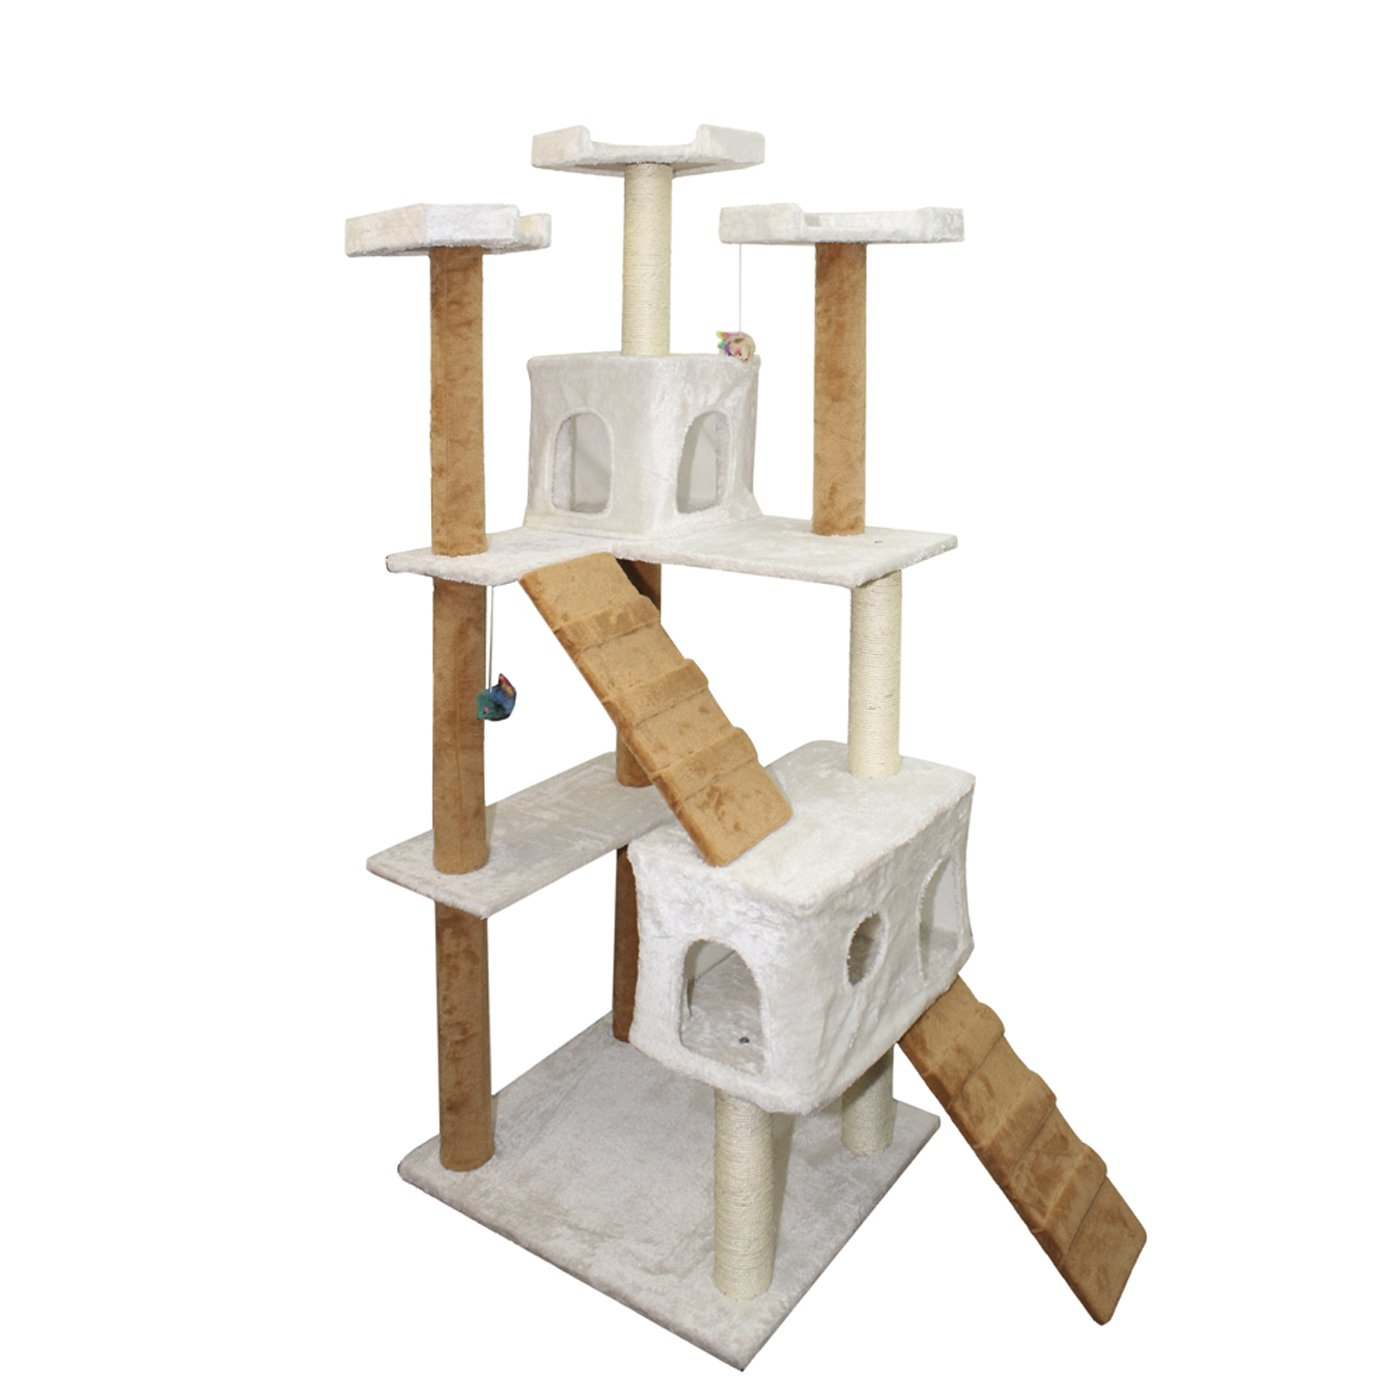 Paws & Pals Condo Cat Tree with Scratching Post And Toys - 22x22x58-Inches, Tan and White